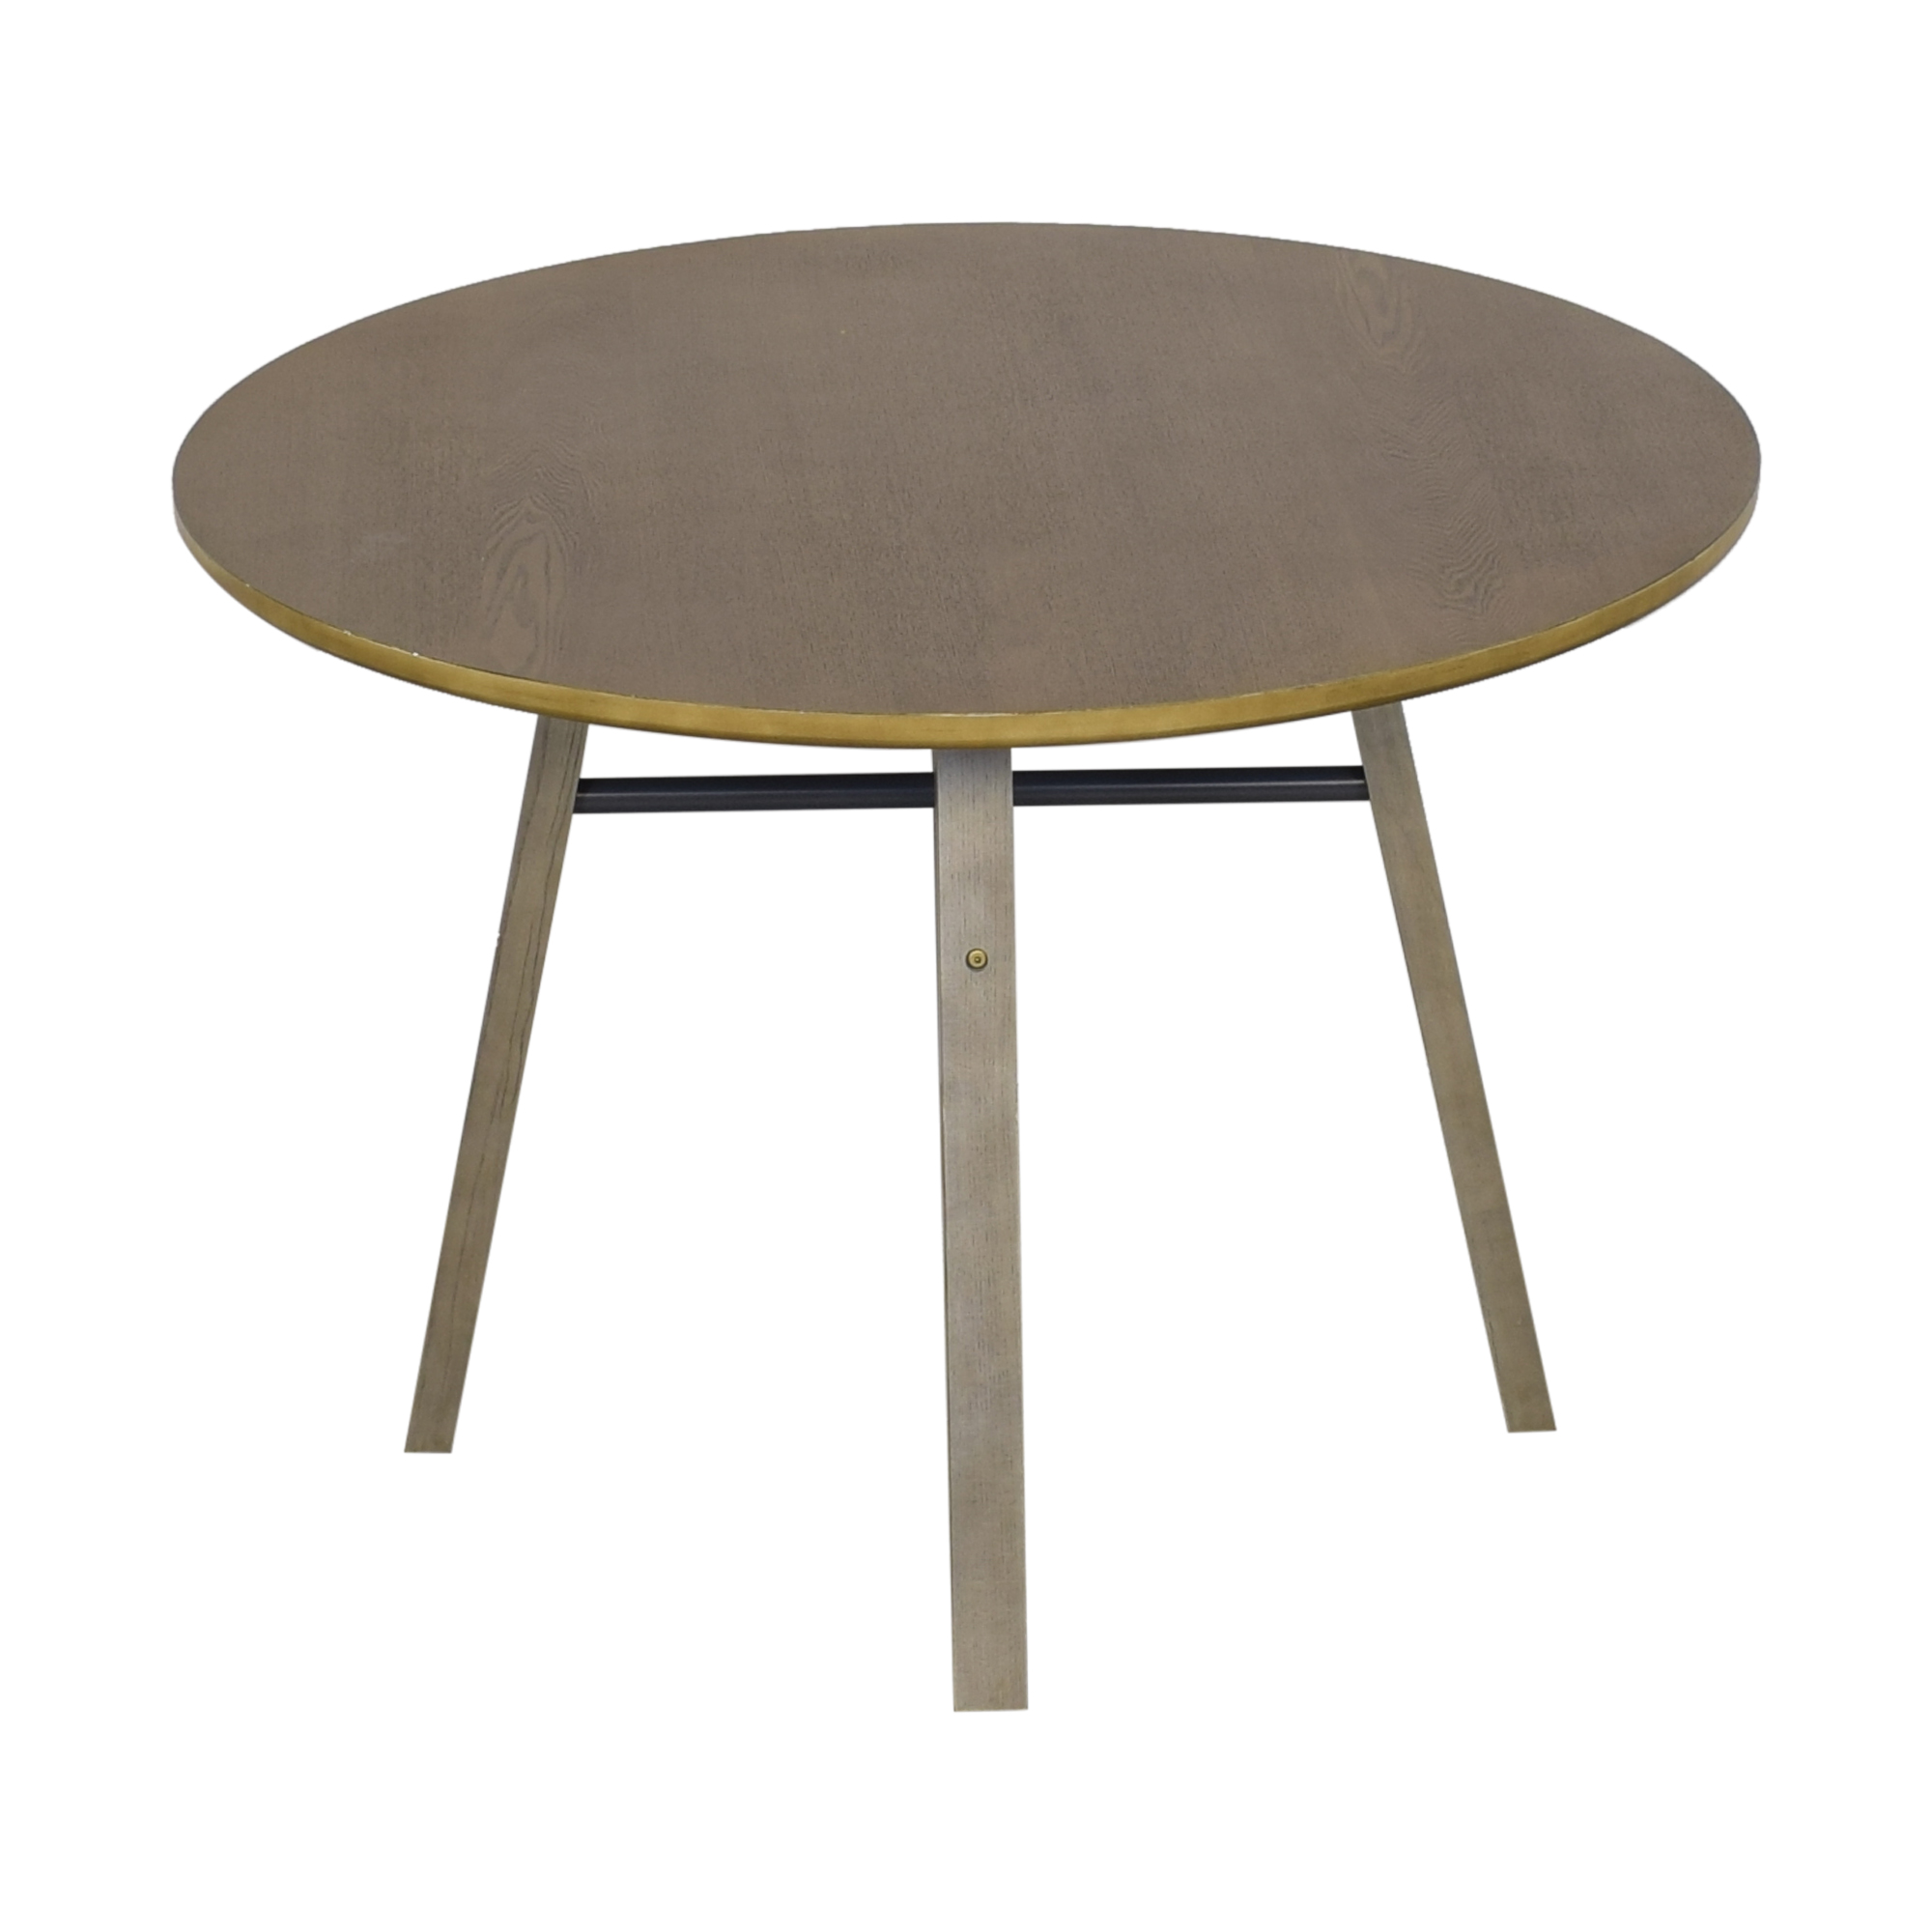 Crate & Barrel Dining Table sale